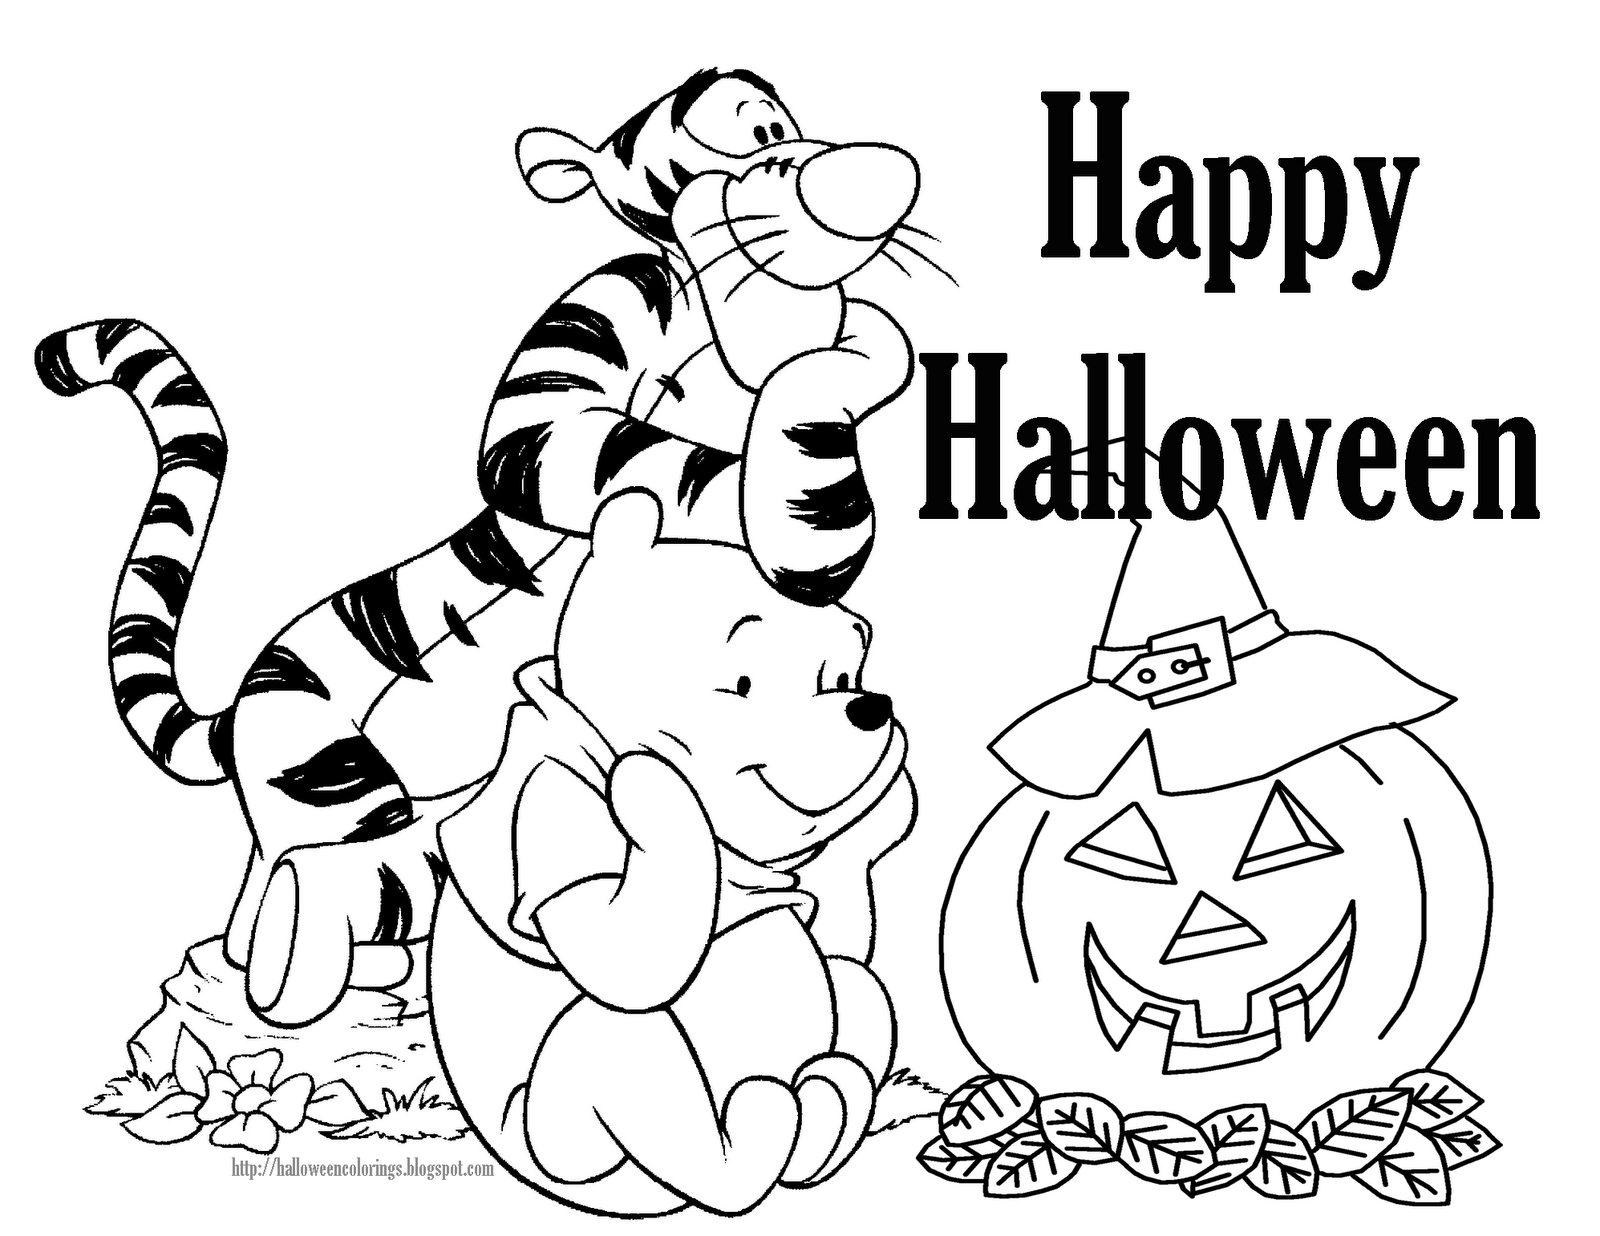 coloring pictures for halloween halloween coloring pages free printable minnesota miranda coloring for halloween pictures